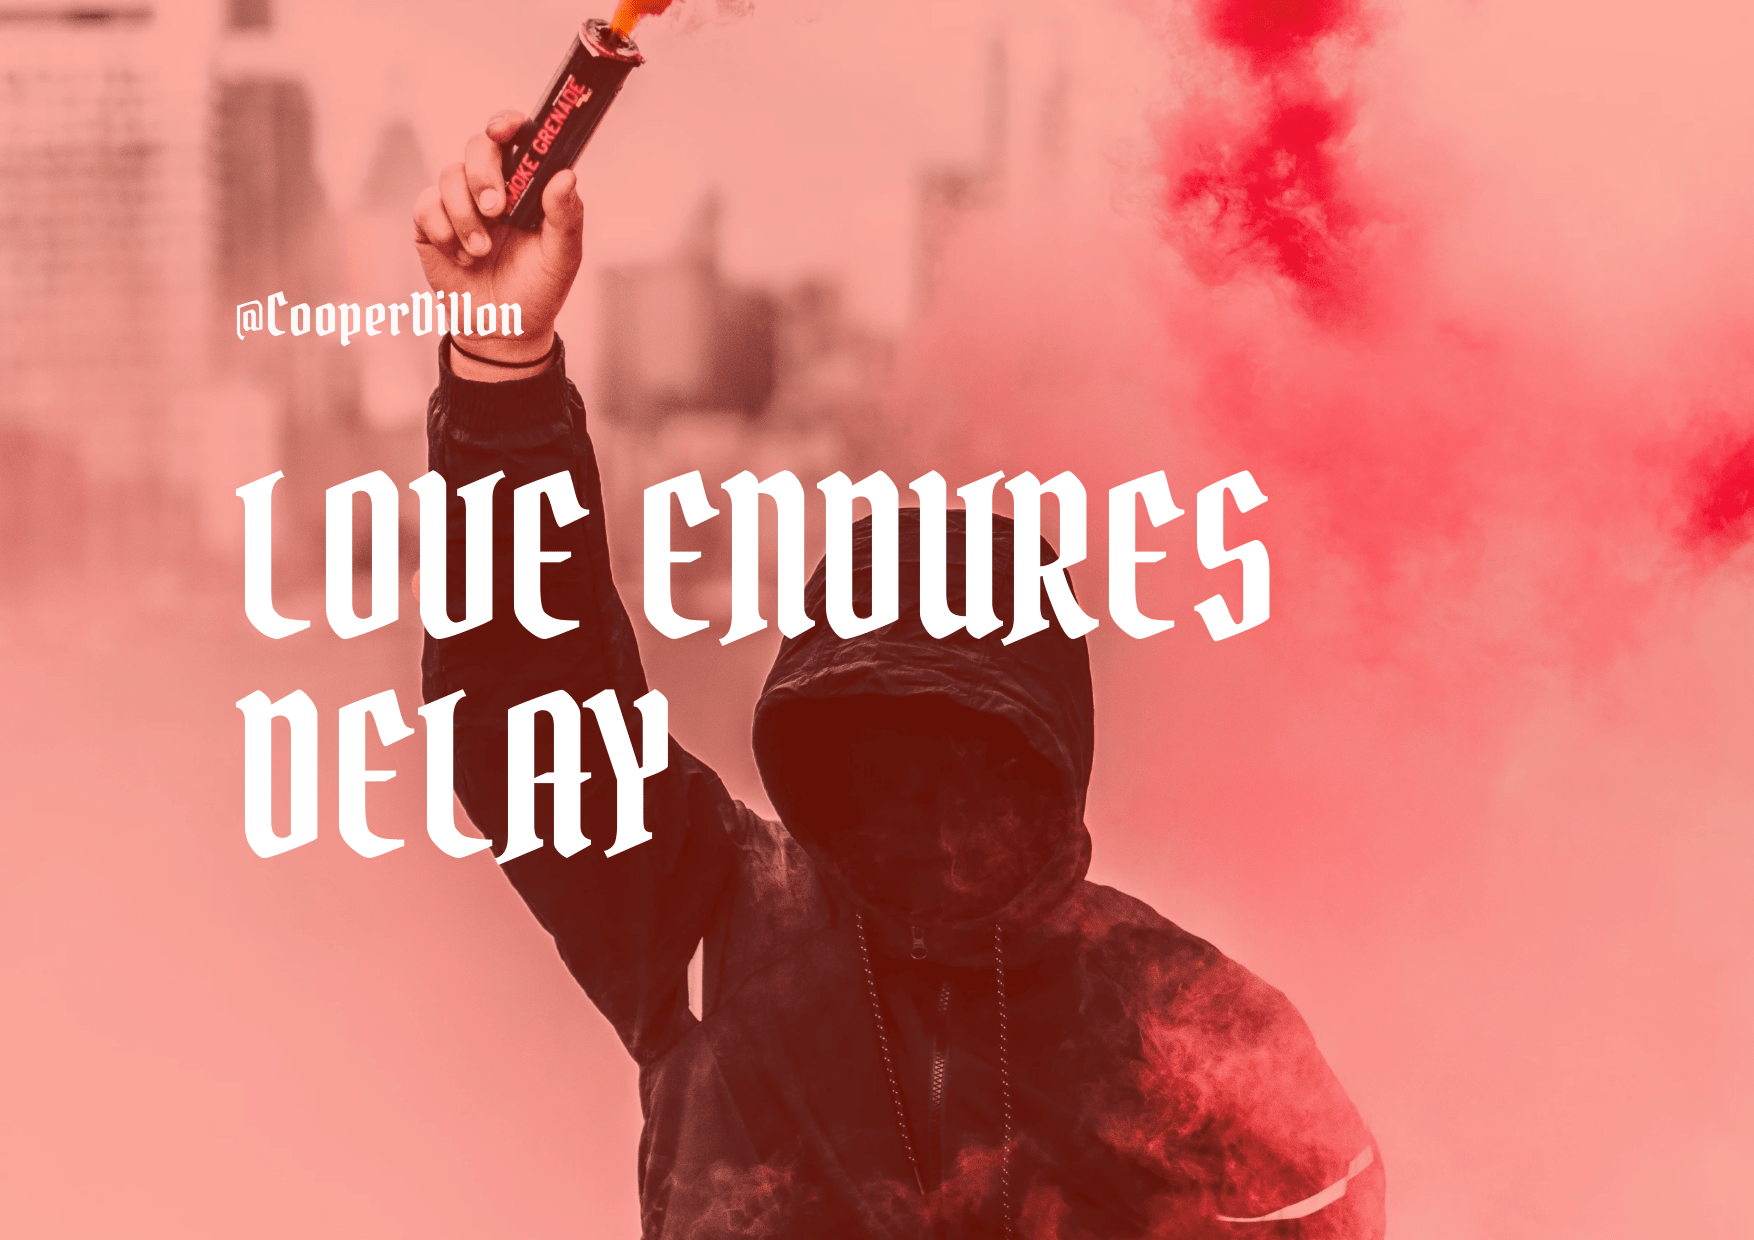 Text,                Font,                Happiness,                Advertising,                Computer,                Wallpaper,                Love,                Album,                Cover,                Brand,                Grenade,                A,                Black,                 Free Image